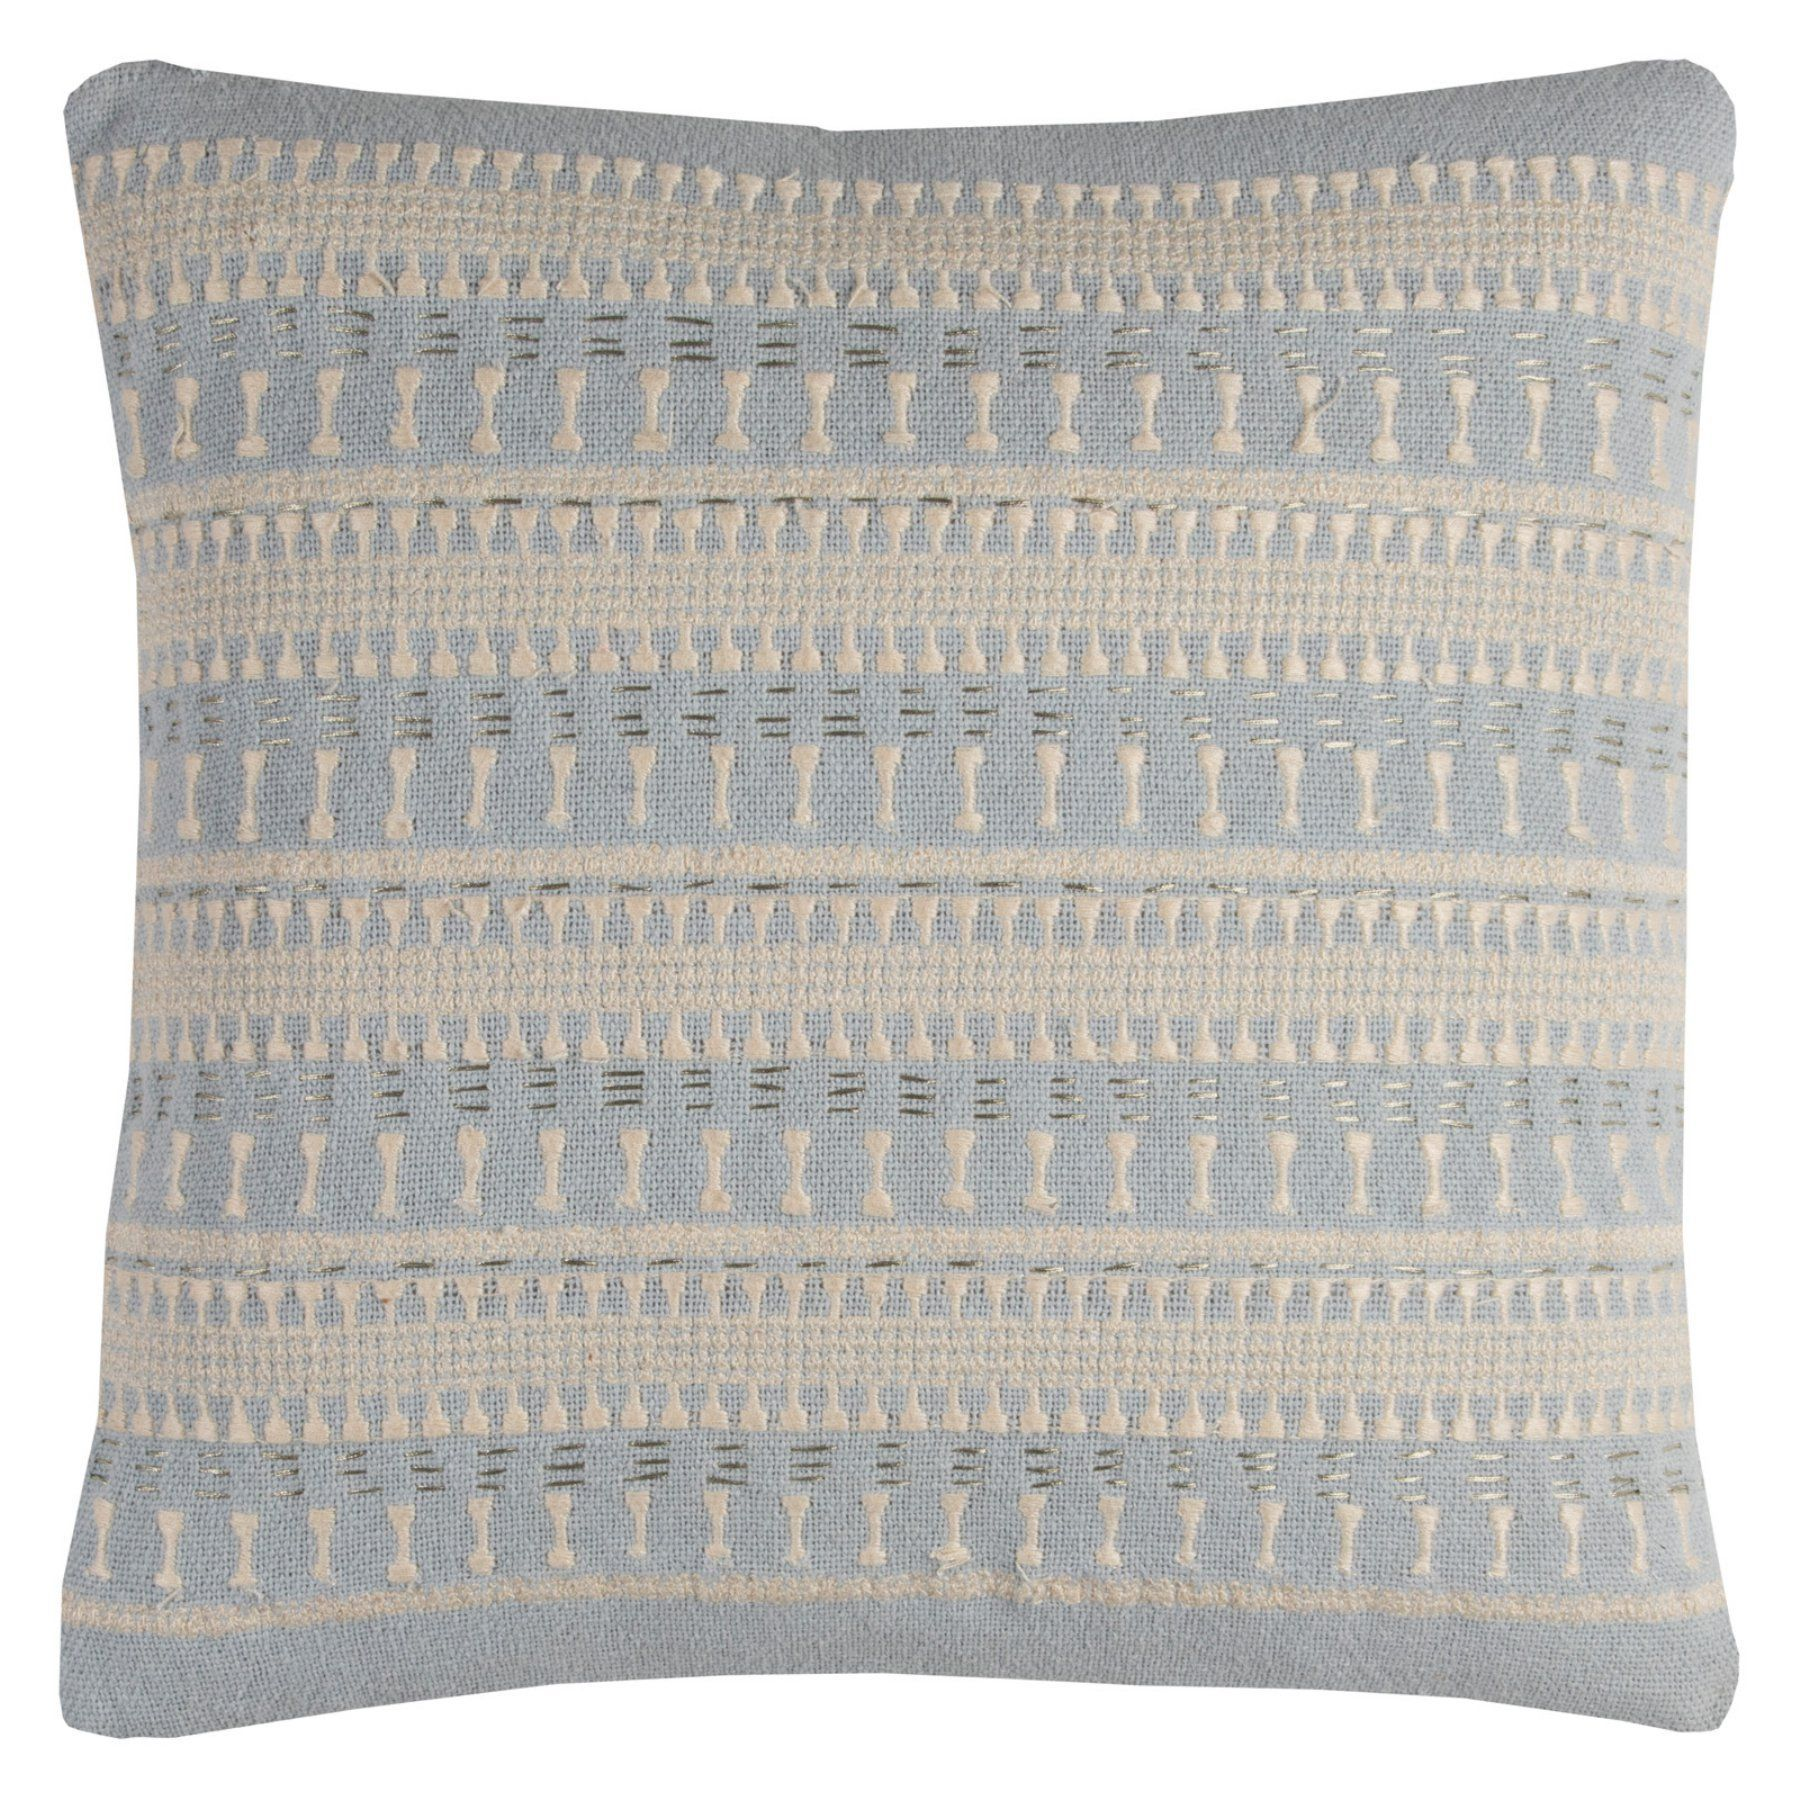 Rizzy Home Textured Stripe Decorative Pillow